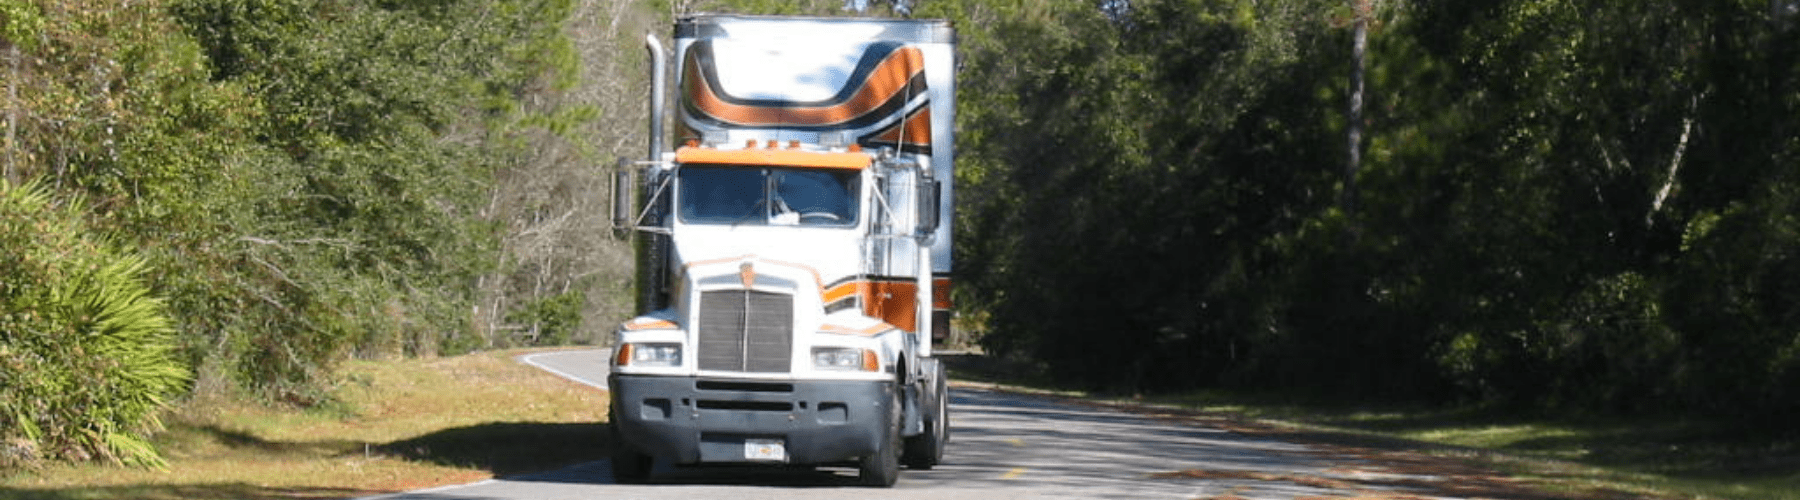 3rd Party CDL Test Site